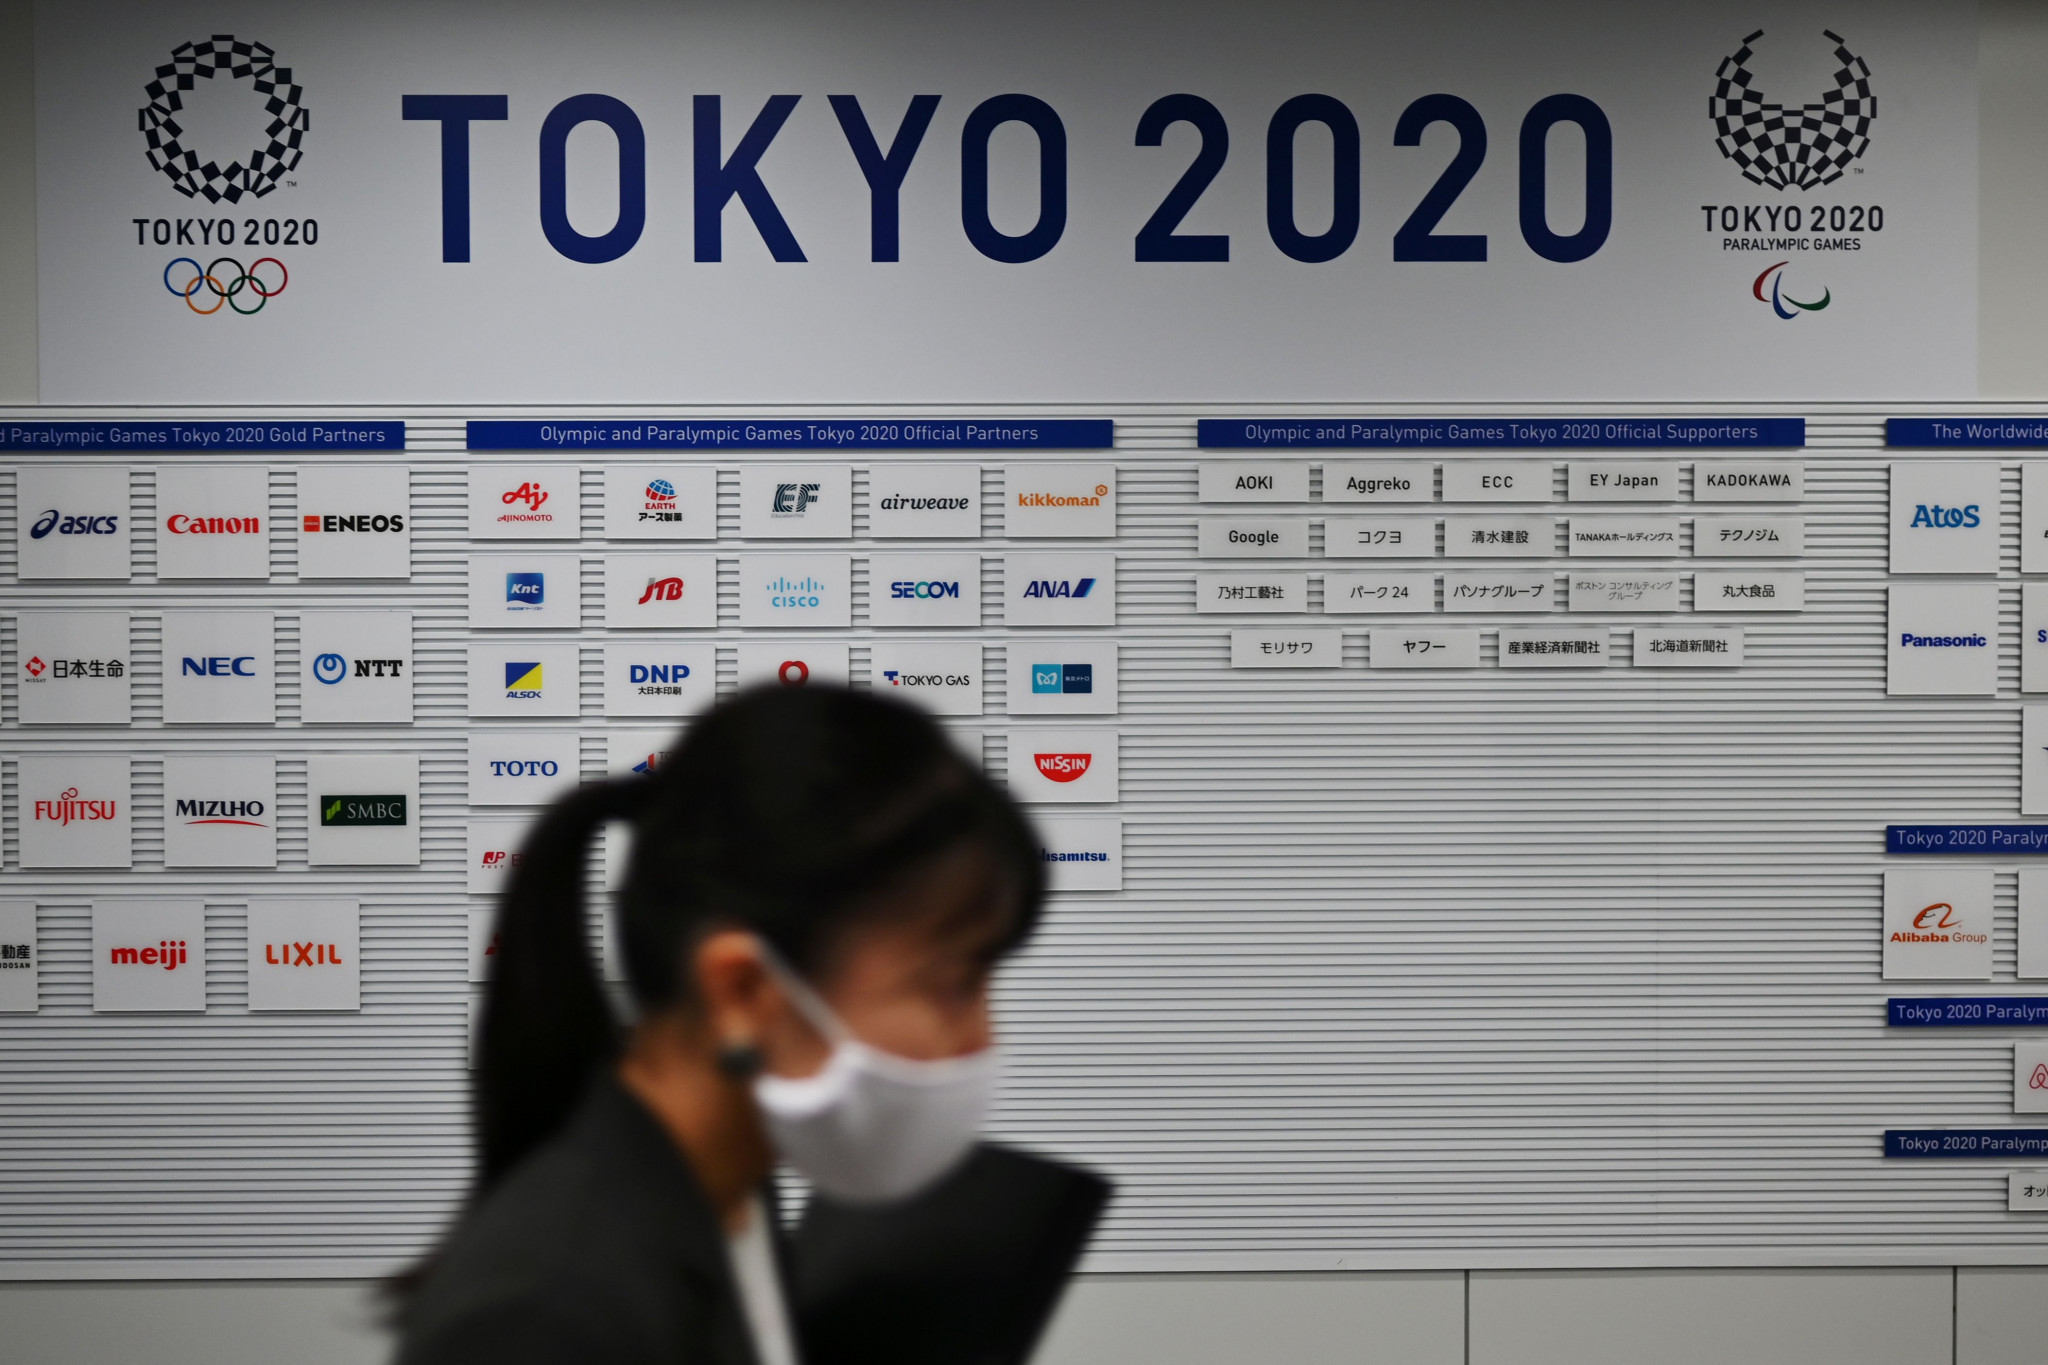 Tokyo 2020 was left with a sponsorship dilemma after the Games were postponed ©Getty Images